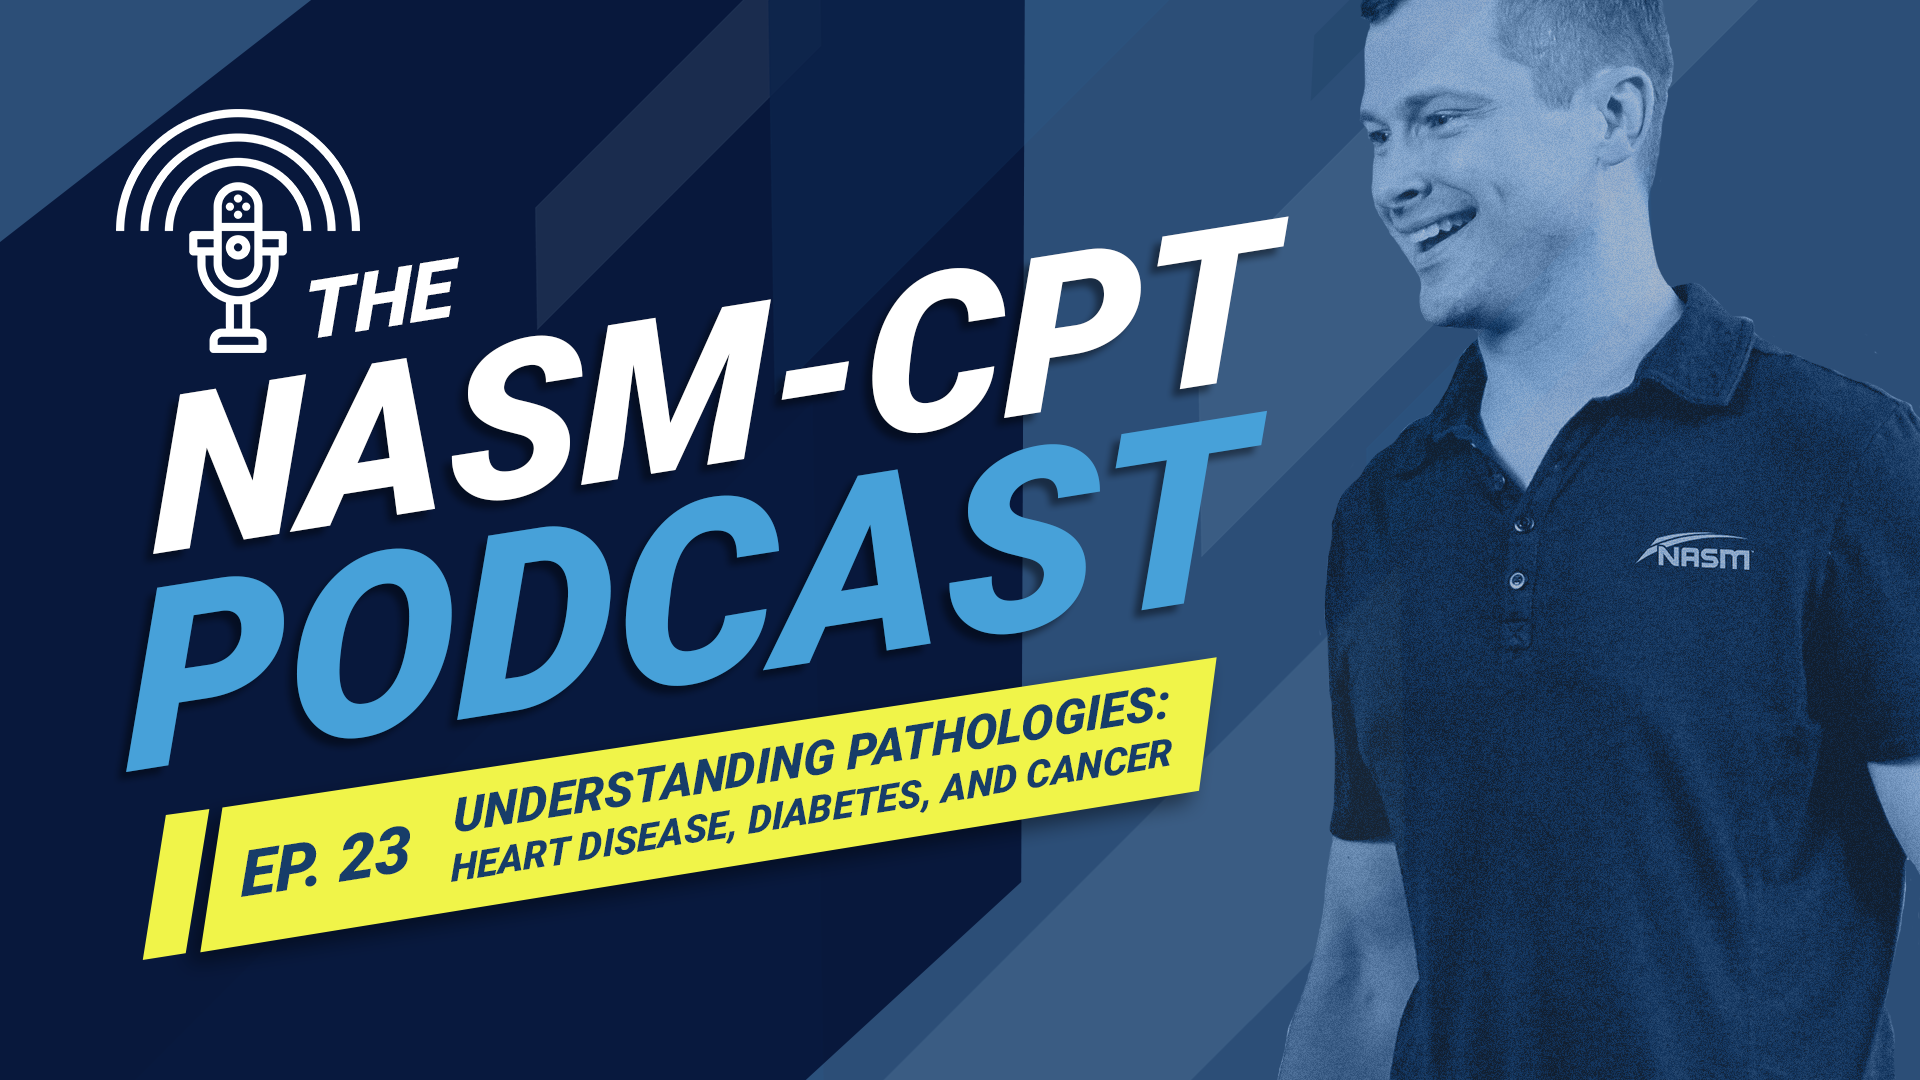 NASM-CPT Podcast Ep. 3